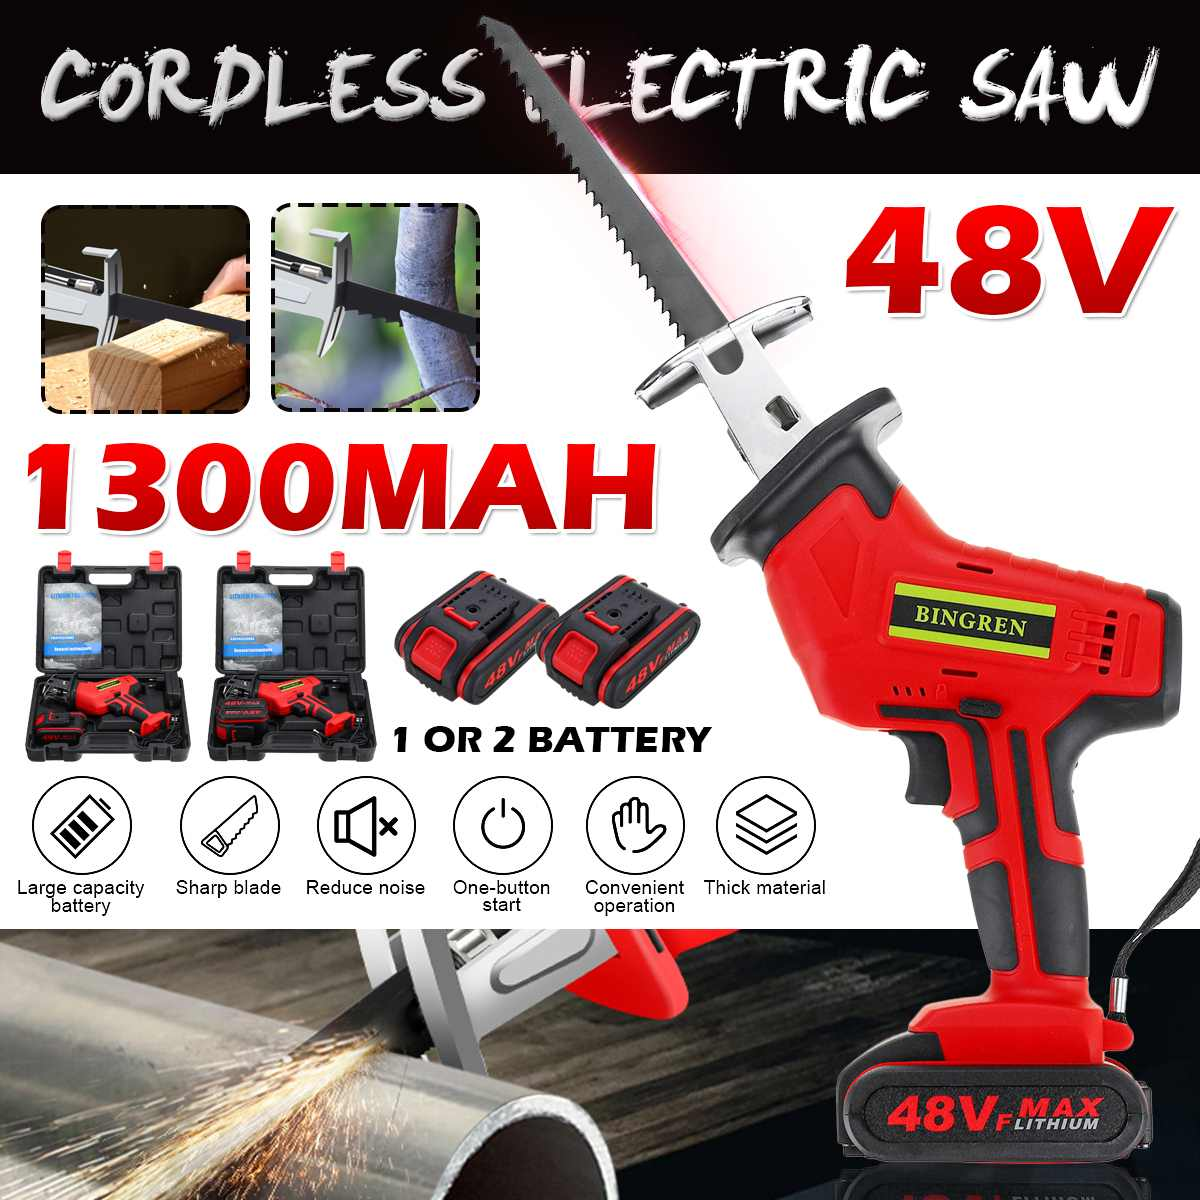 Rechargeable Cordless Reciprocating Saw 48V Adjustable Speed Electric Saw Wood Cutting Tool Kit with 1/2 Li-ion Battery EU Plug